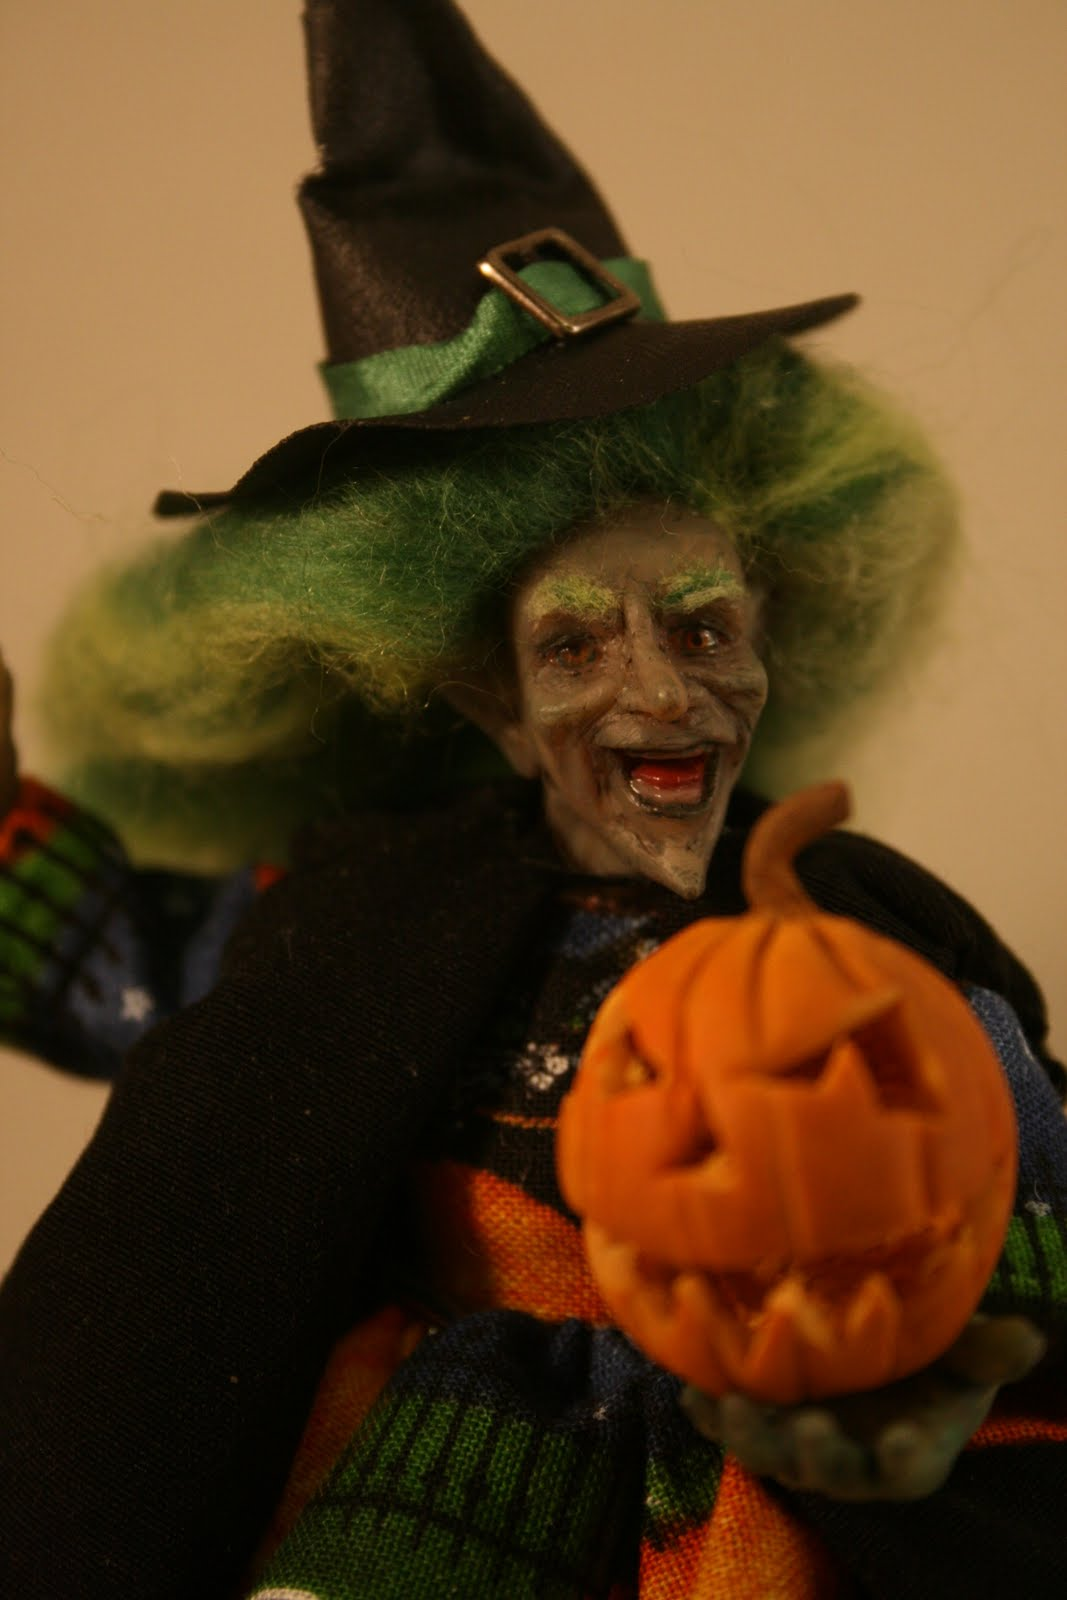 Lilyelf miniatures: More new dolls and a very scary witch